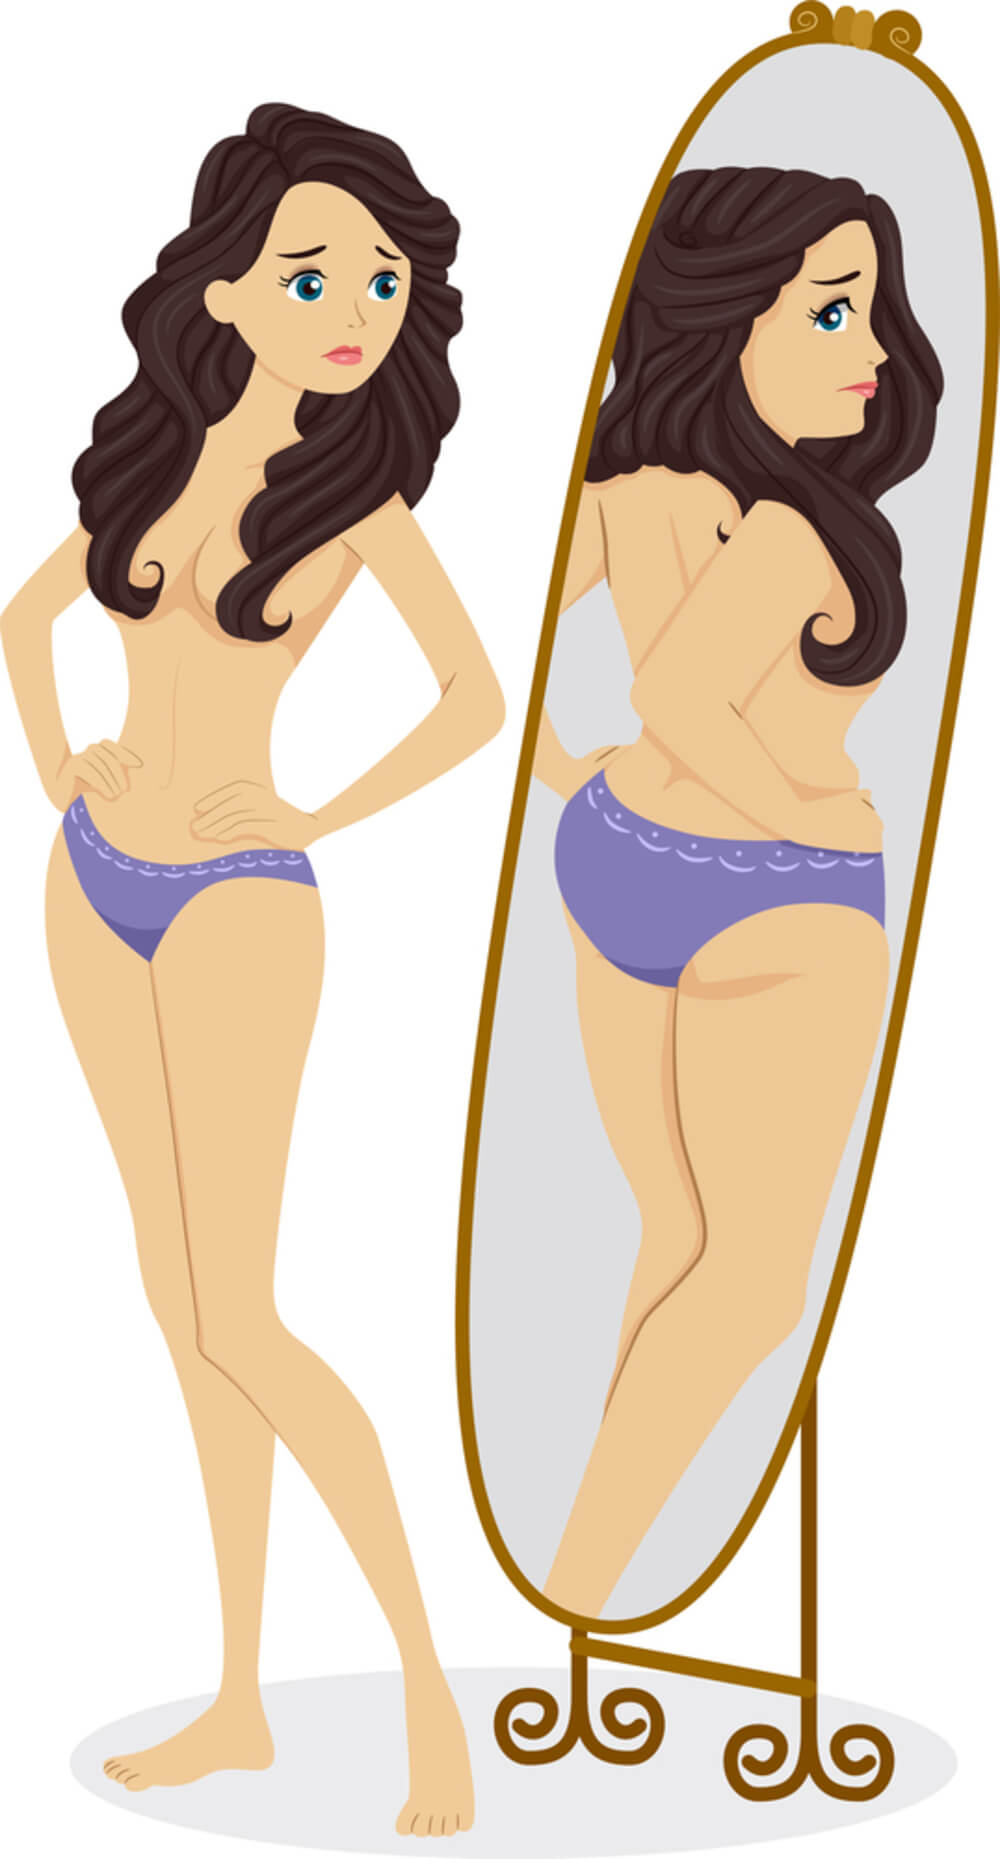 Illustration of a Thin Female Standing in Front of a Mirror and Seeing a Plump Girl in the Reflection